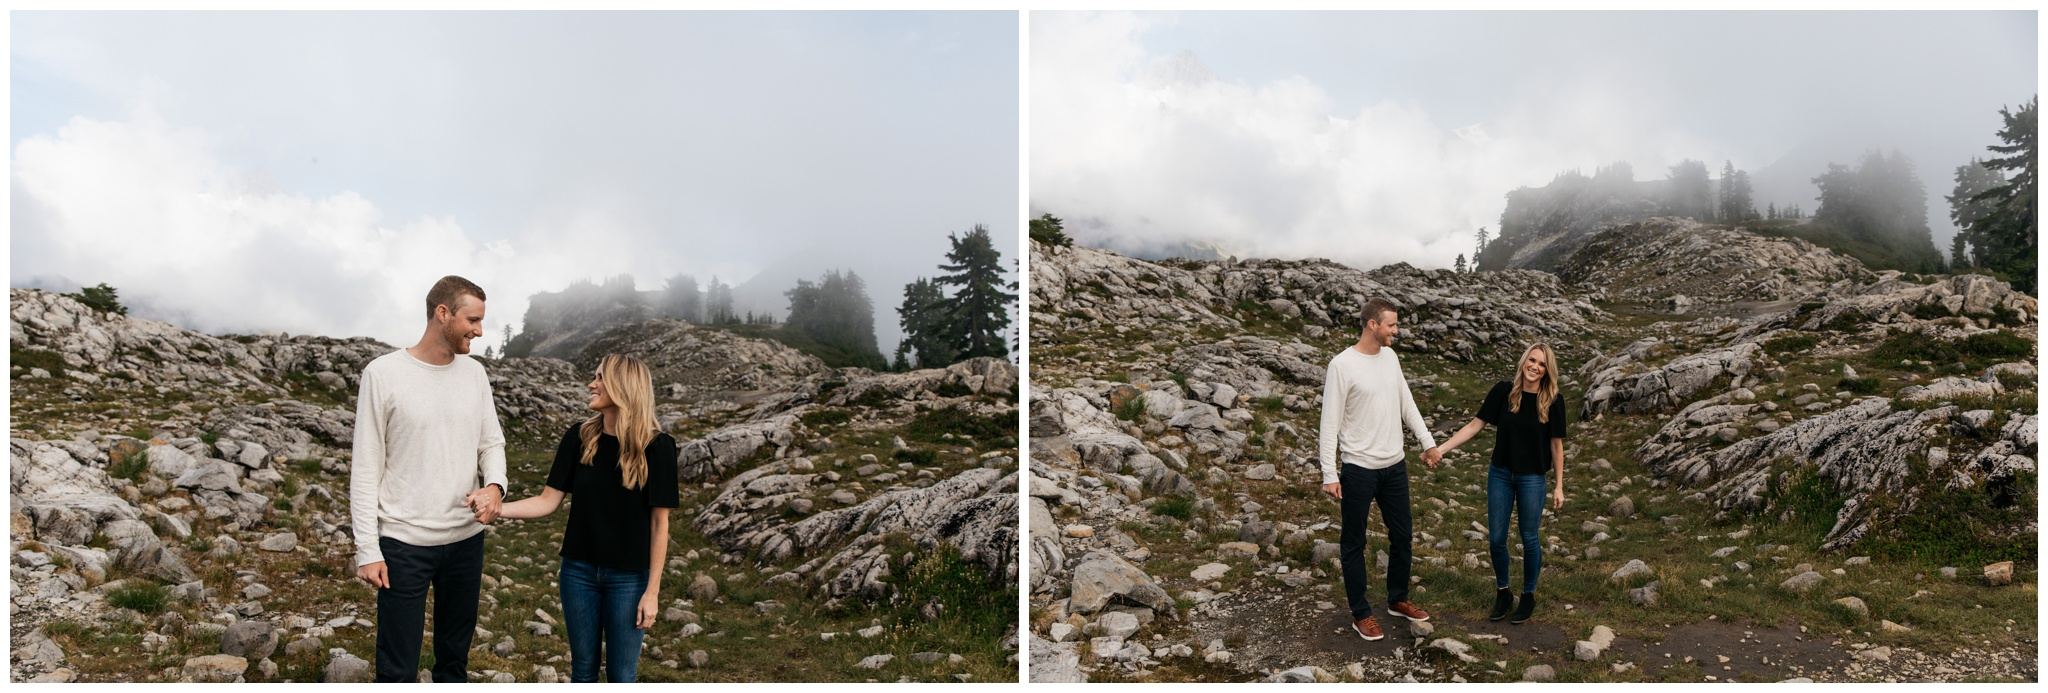 Artist Point Mt. Baker Engagement Session Seattle Washington with Brittney Hyatt Photography